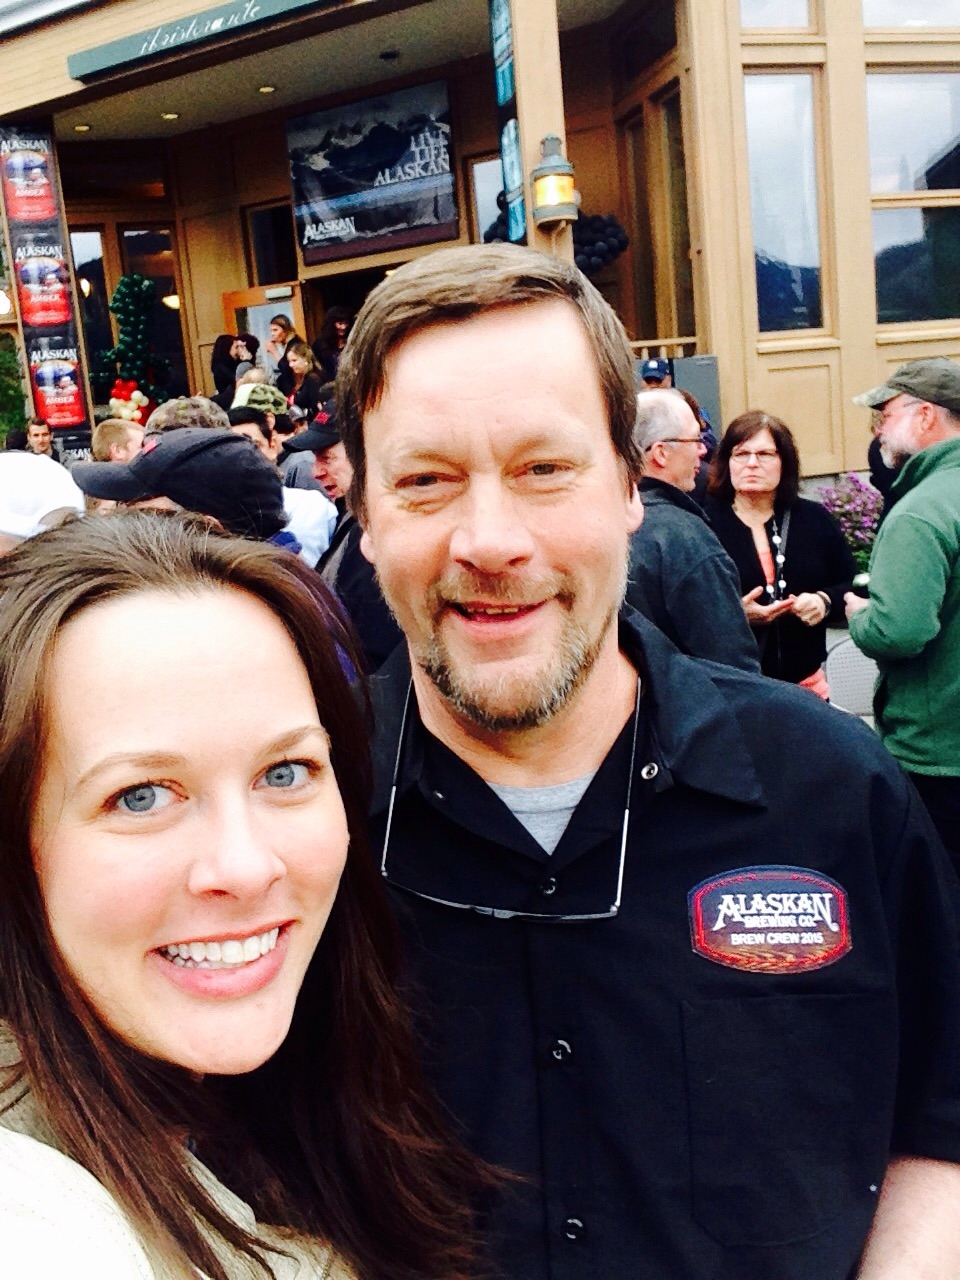 With co-founder, Geoff Larson. Learn more about the founders, Geoff and Marcy, in this  Craft Beer feature .